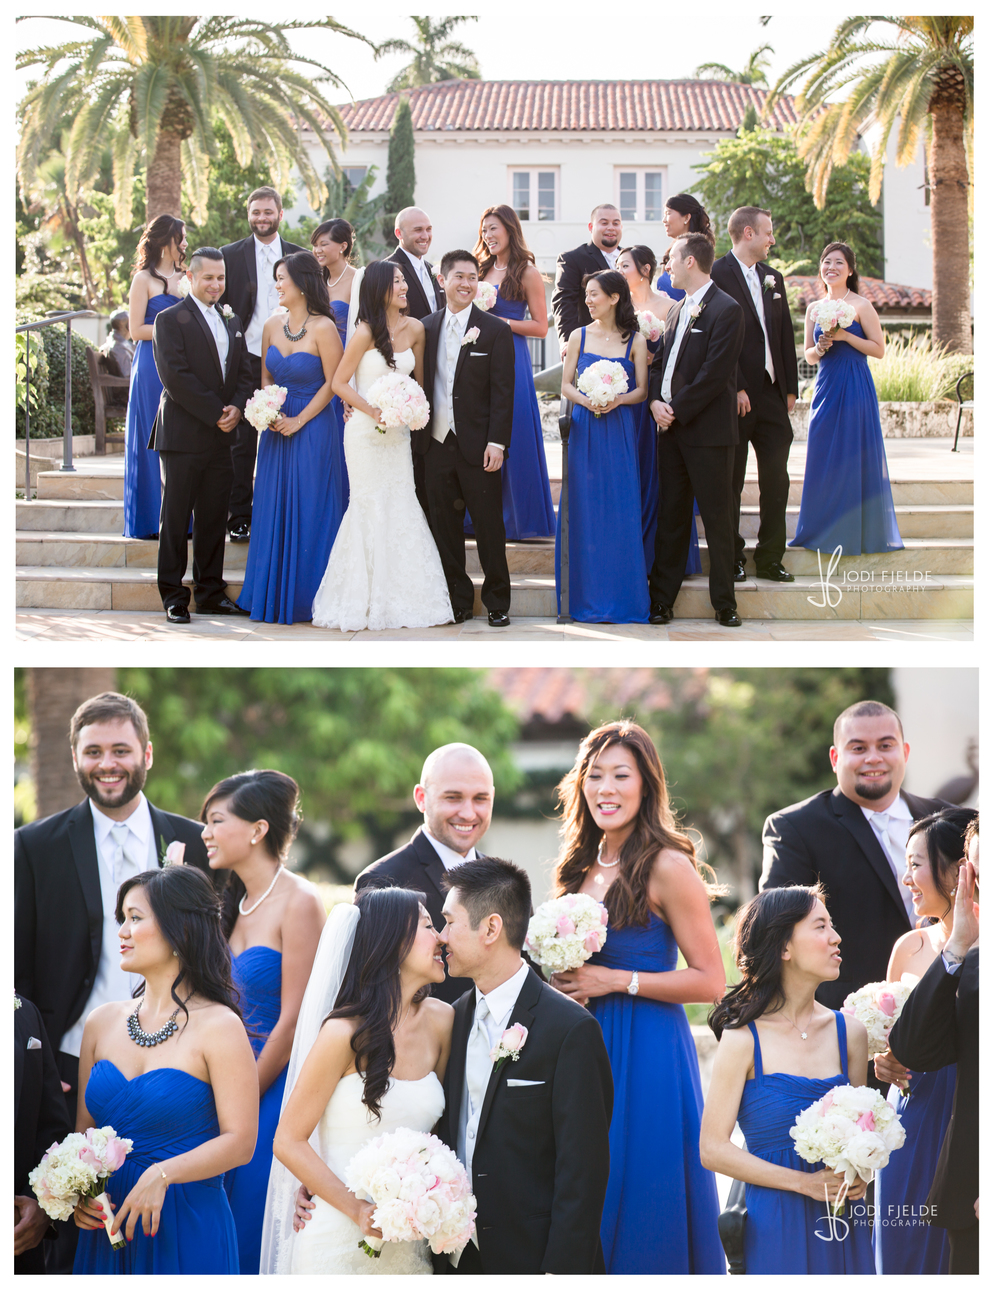 Lake_Pavilion_Wedding_West_Palm_Beach_Jodi_Fjelde_Photography_Betty_Alex_Sociaety_Of_Four _Arts_6.jpg